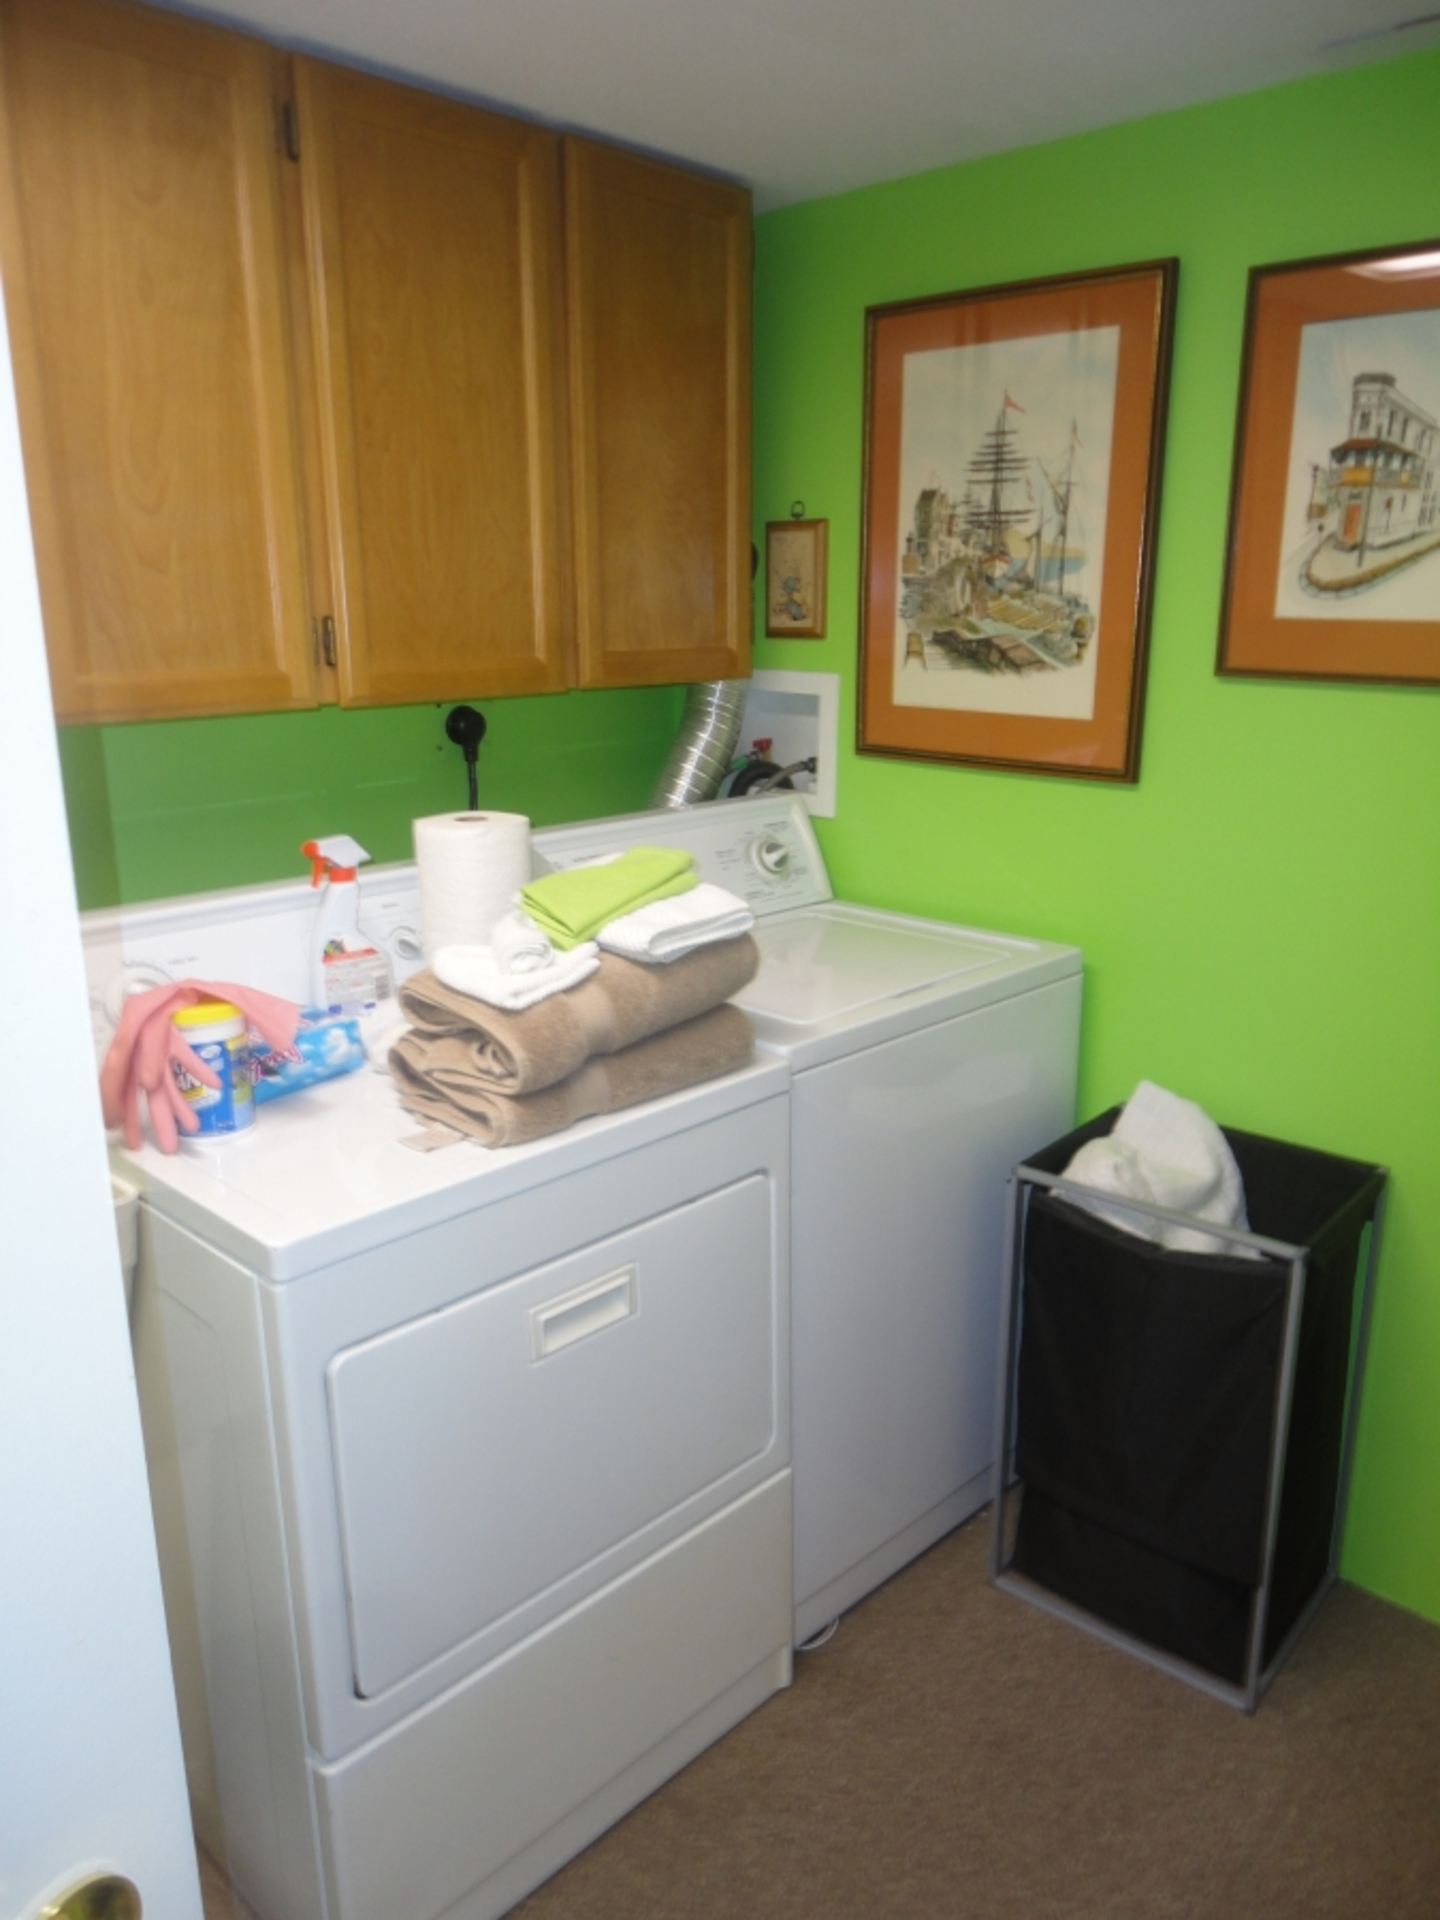 Laundry at Address Upon Request, South Cambie, Vancouver West